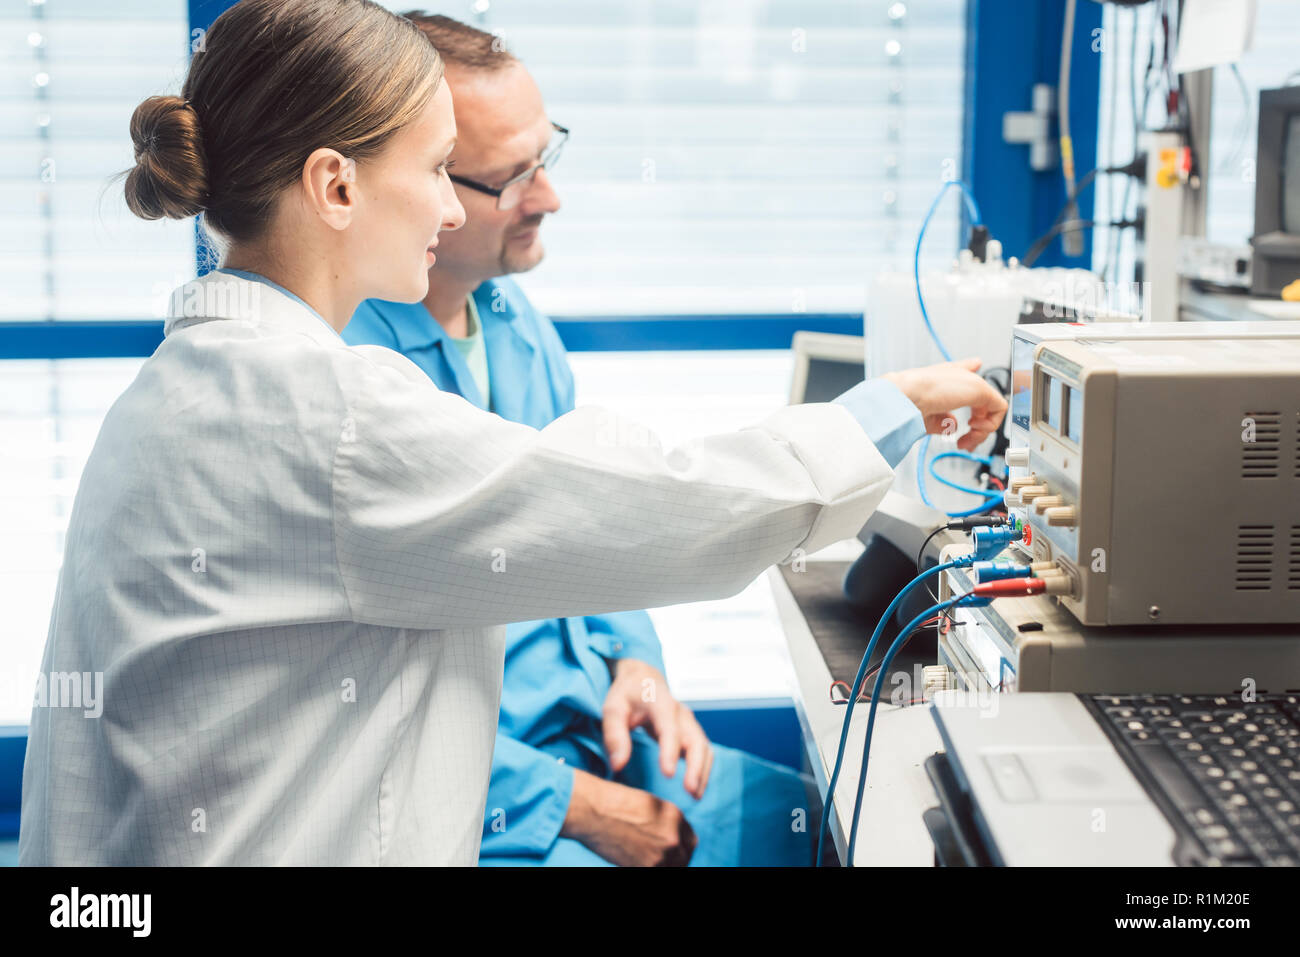 Team of electronic engineers testing a product prototype on test bench in the lab Stock Photo